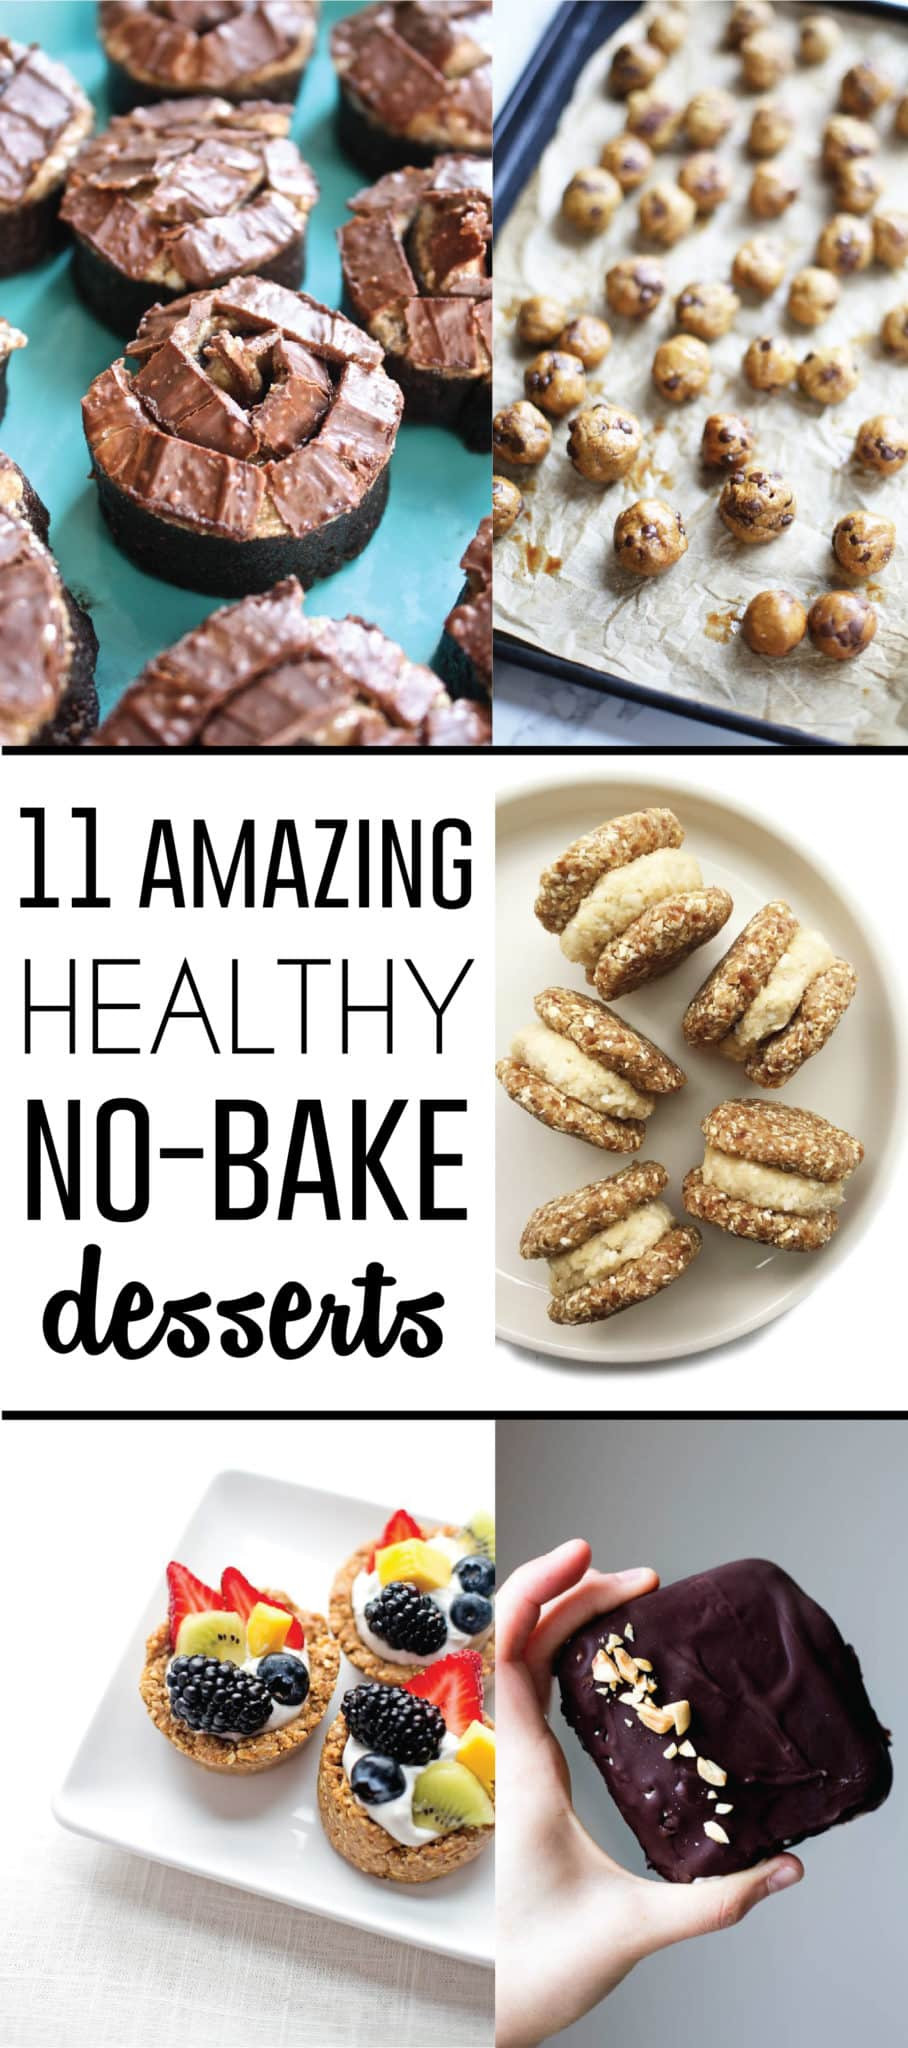 Healthy No Bake Desserts  11 Amazing Healthy No Bake Dessert Recipes • Fit Mitten